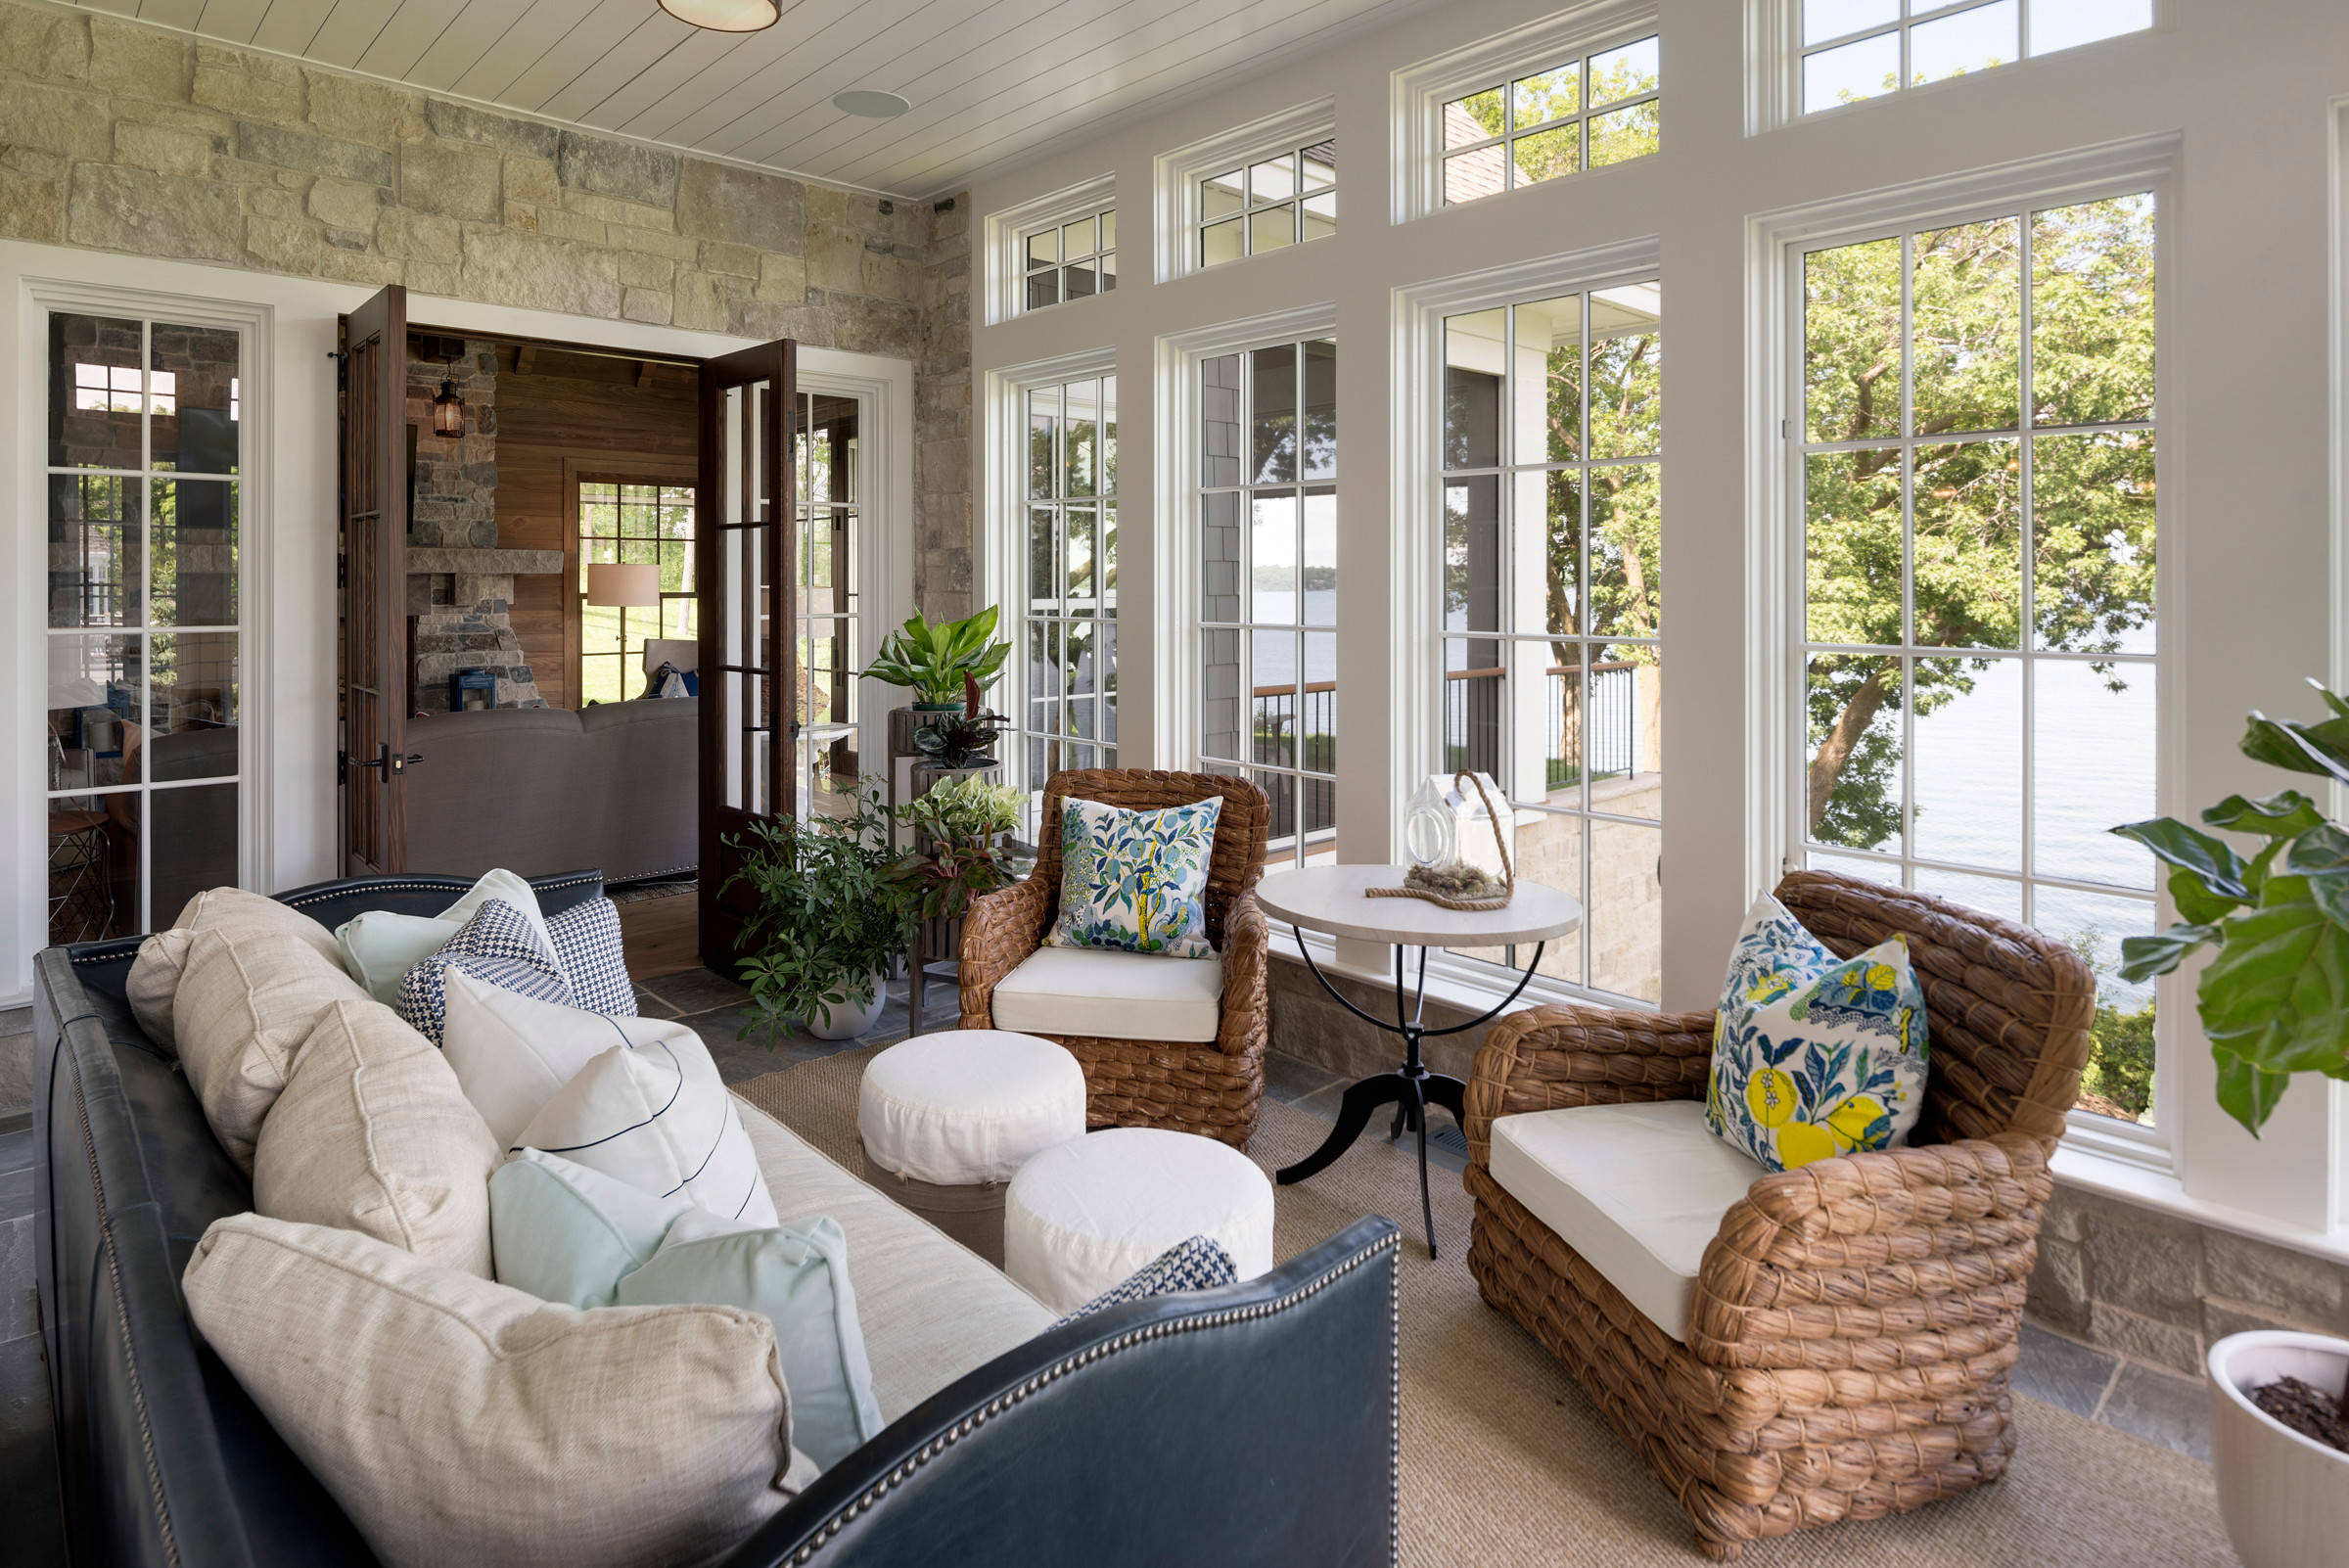 21 Beautiful Mid-Sized Sunroom Pictures & Ideas - September, 21